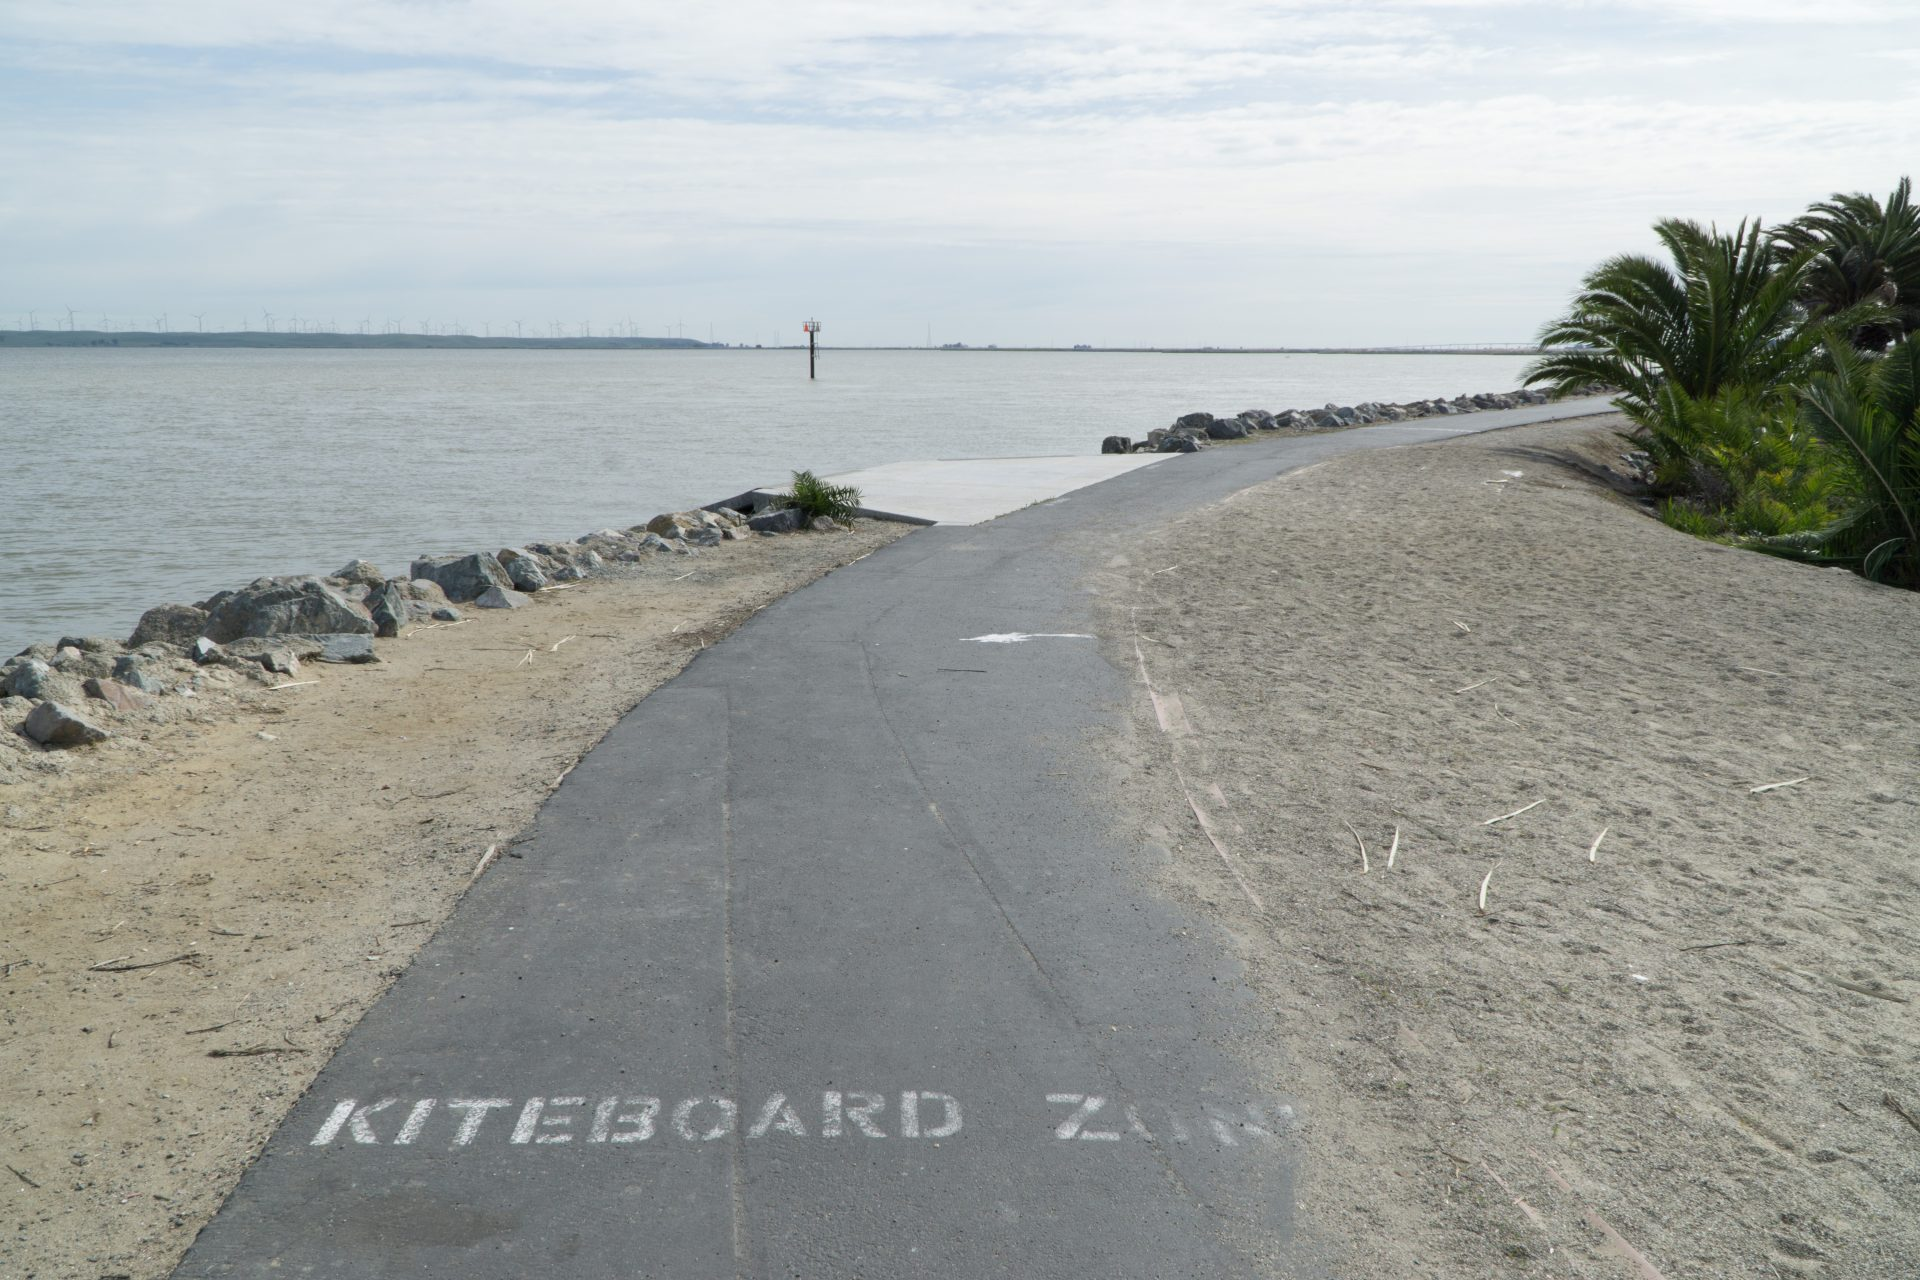 paved path labeled kiteboard zone, water to left